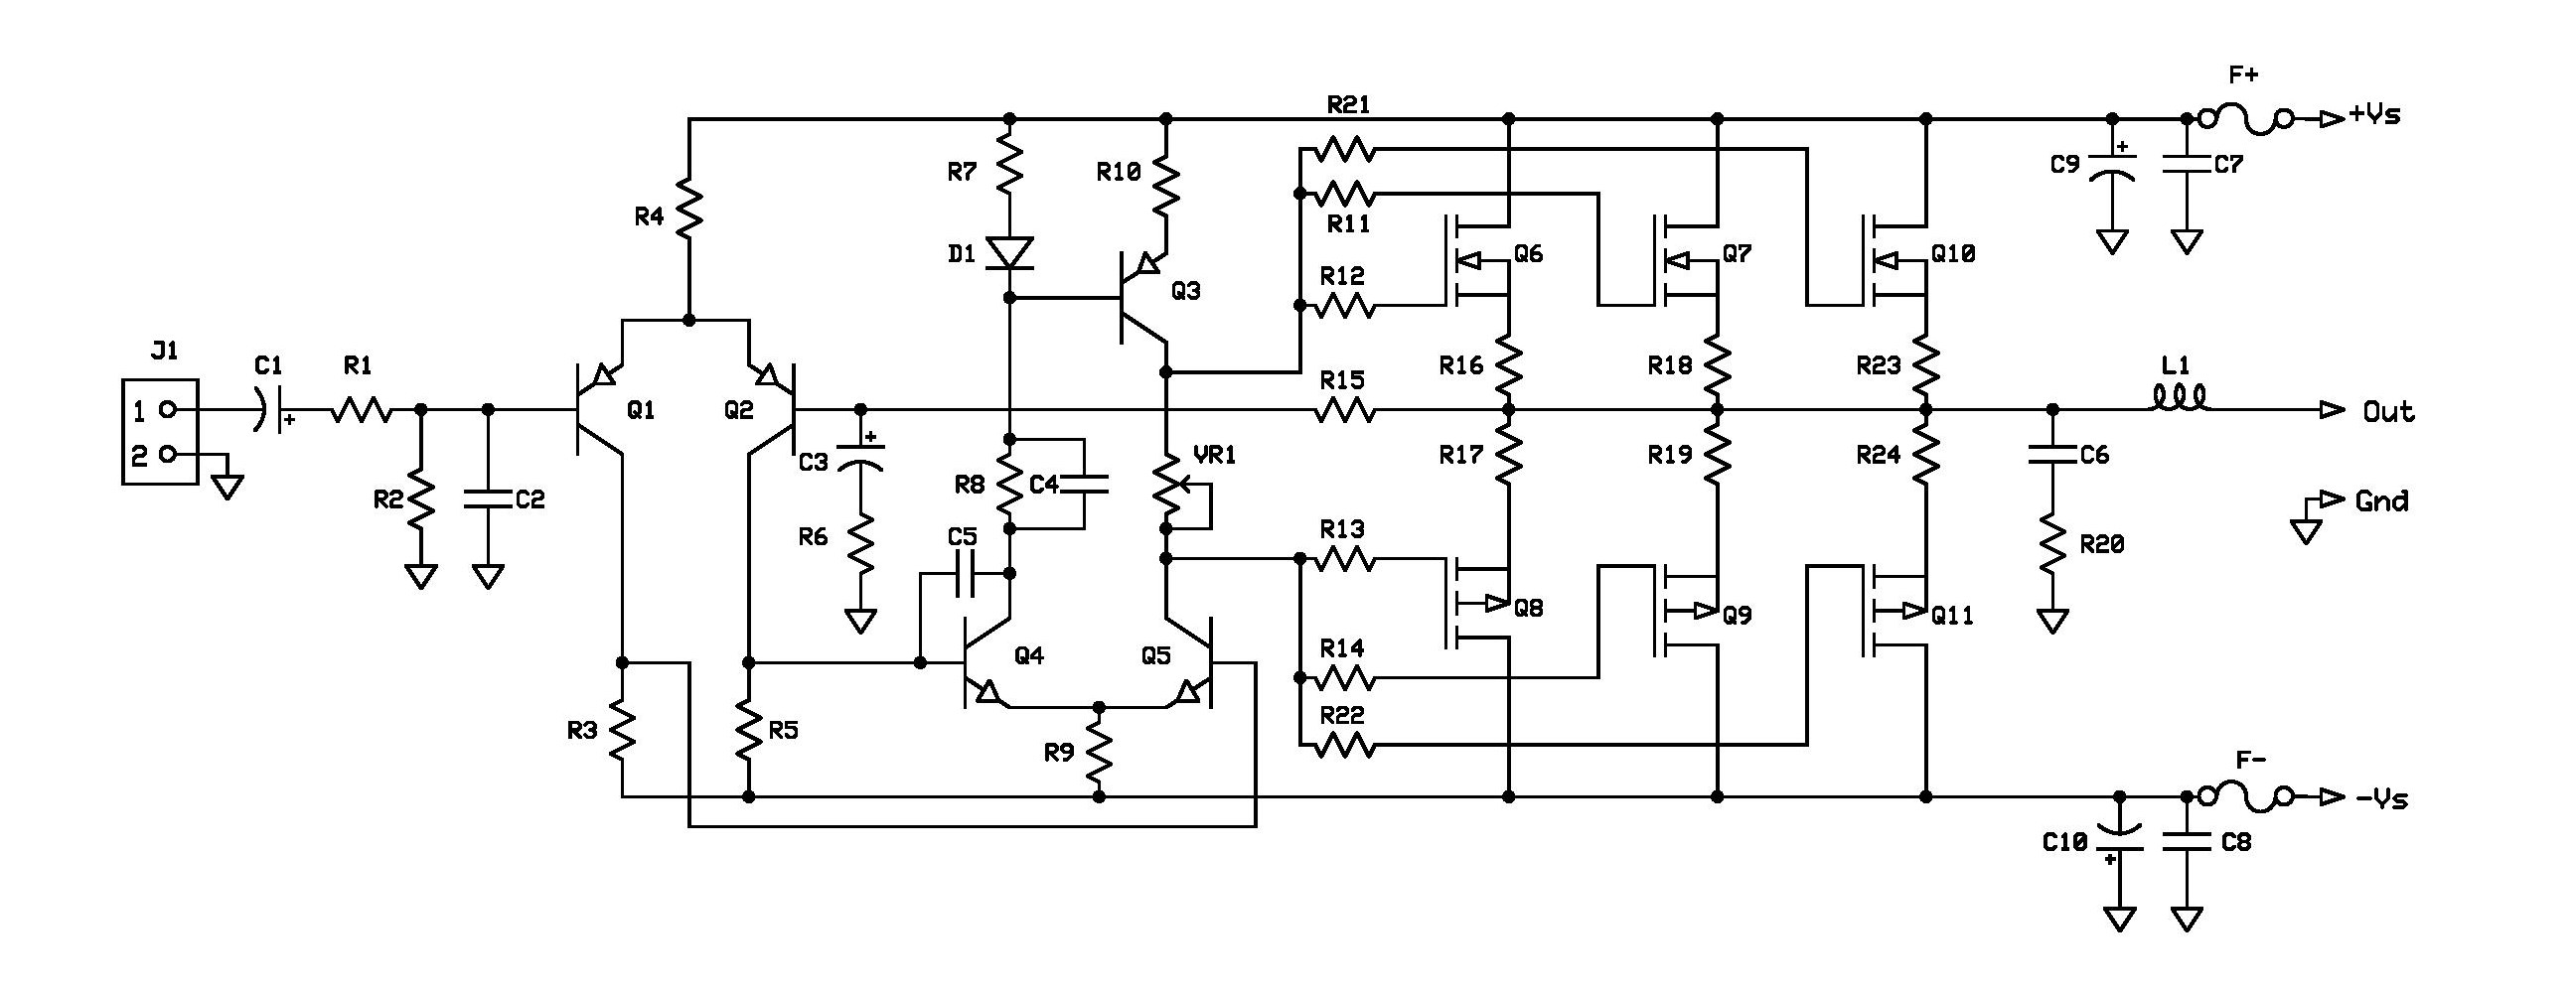 Project 11 Buildaudioamps Mosfet Circuit Design Amp T0220 Page 001 Schematic